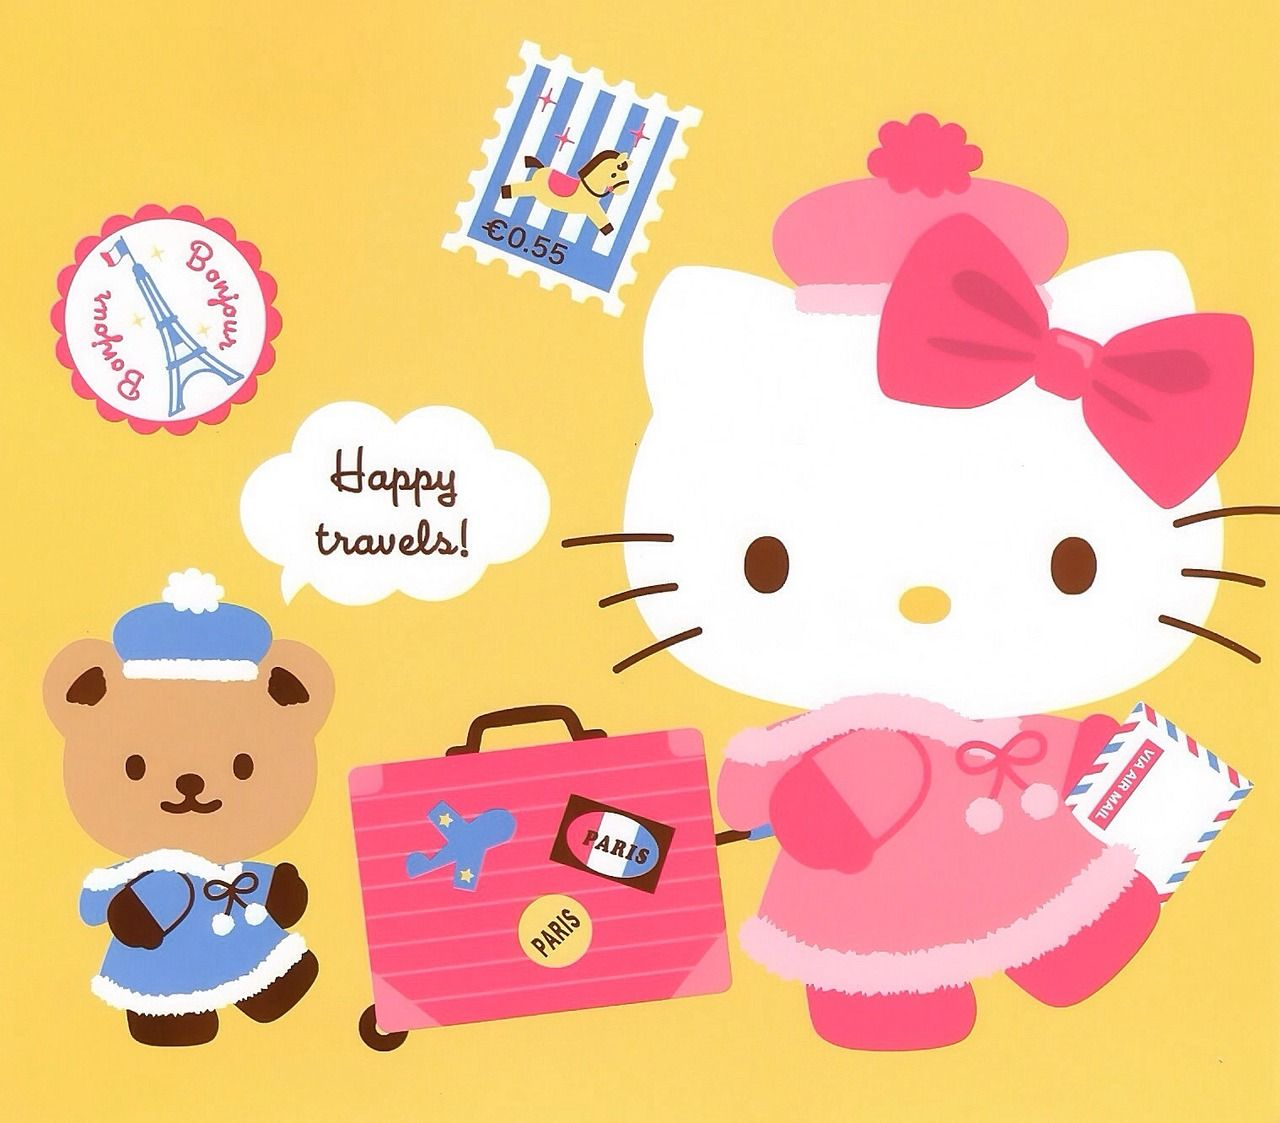 Must see Wallpaper Hello Kitty Painting - ae585015c5f06081b4aad4943e6c3e71  Perfect Image Reference_887234.jpg